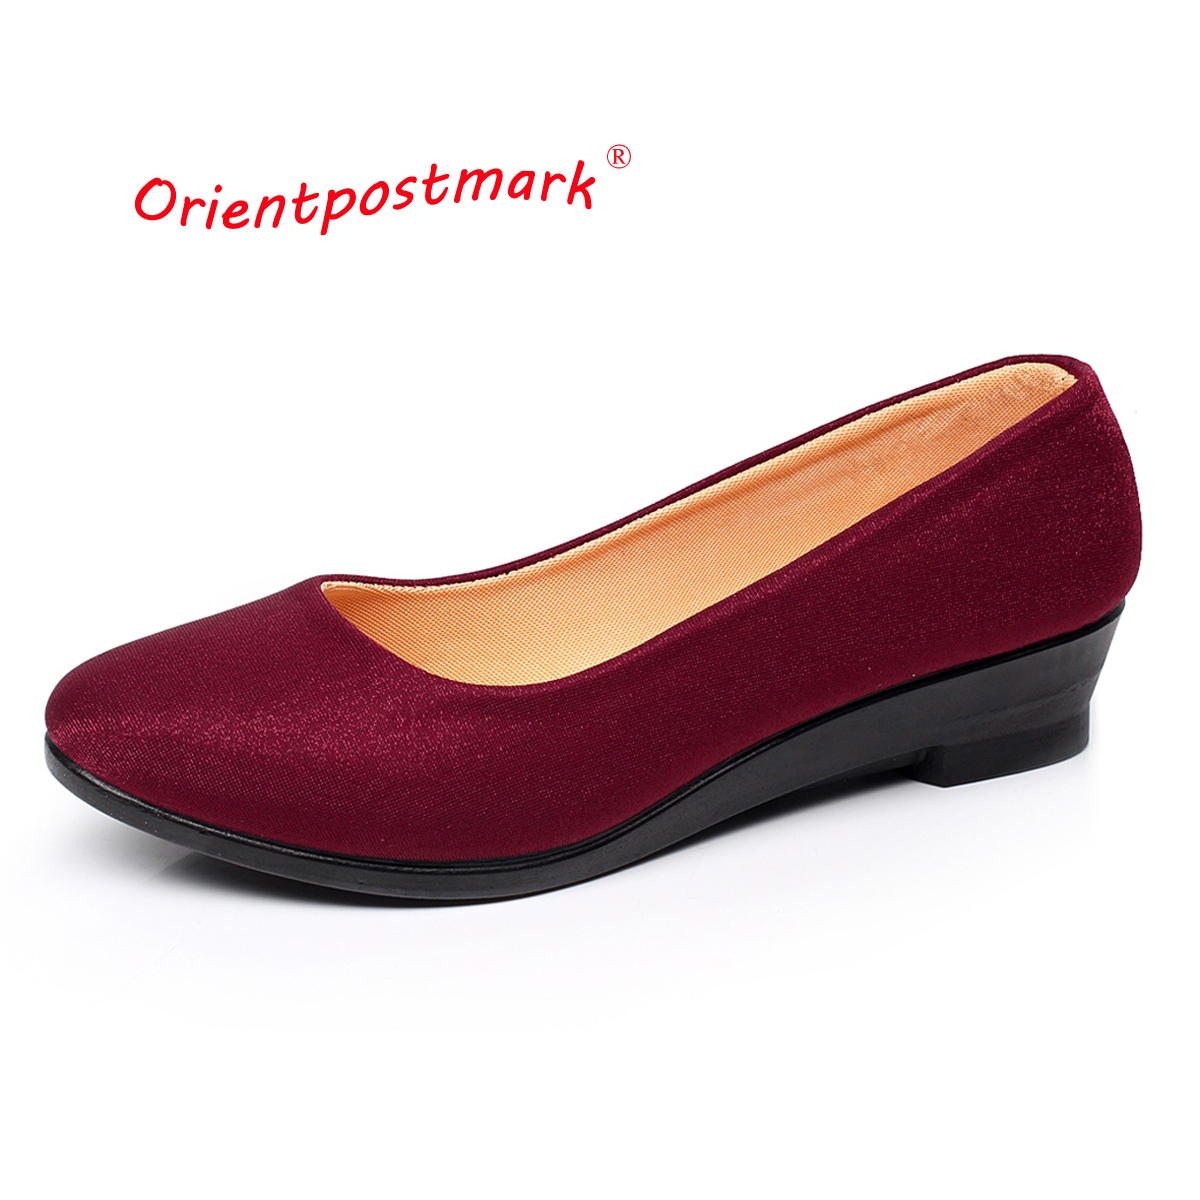 Women Ballet Shoes Women Wedges Shoes for Work Cloth Sweet Loafers Slip On Women's Pregnant Wedges Shoes Oversize Boat Shoes women shoes women ballet flats shoes for work flats sweet loafers slip on women s pregnant flat shoes oversize boat shoes d35m25